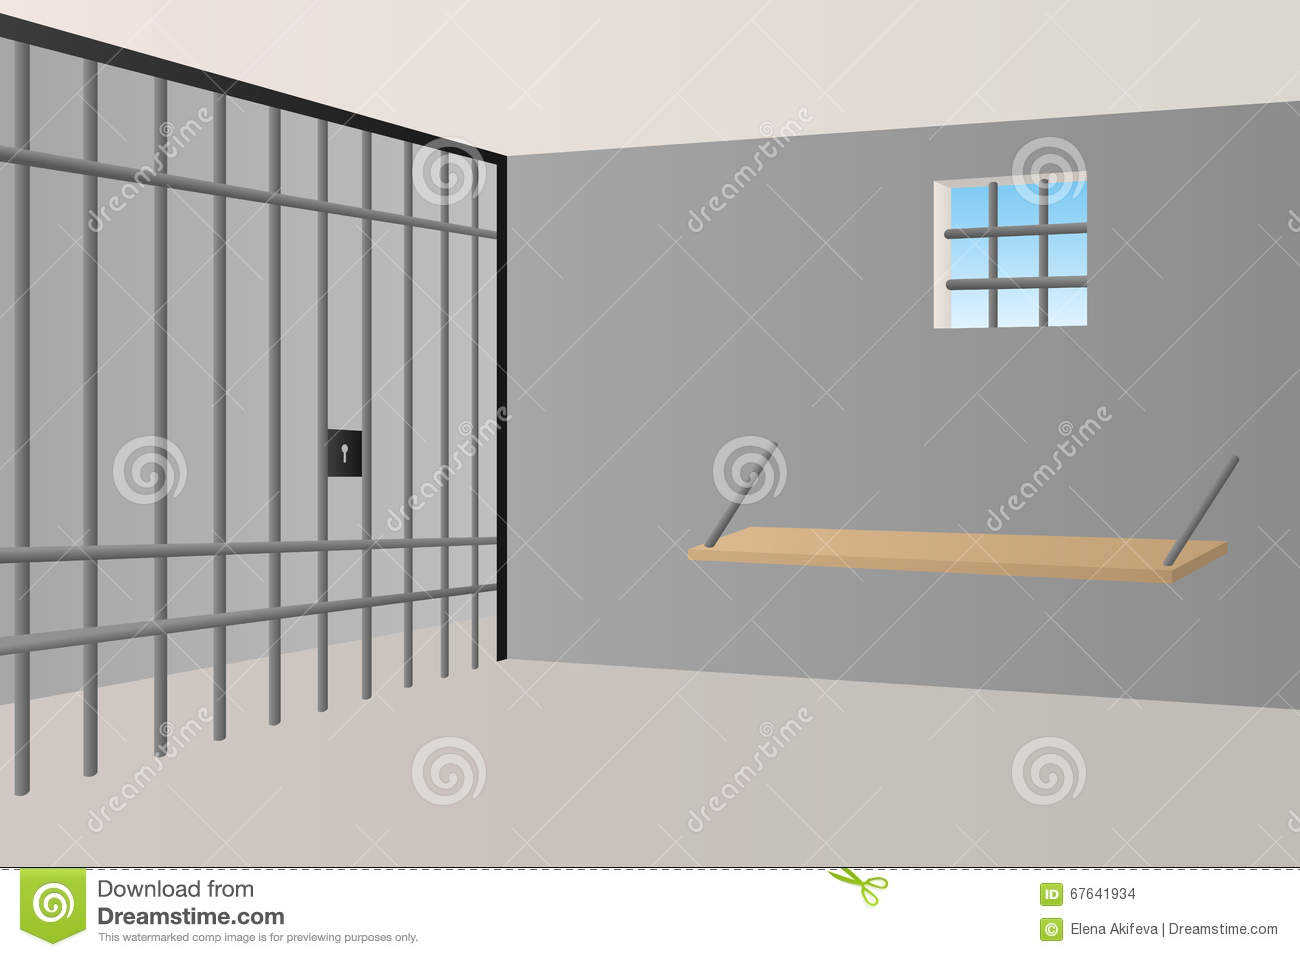 Free Jail Room Images